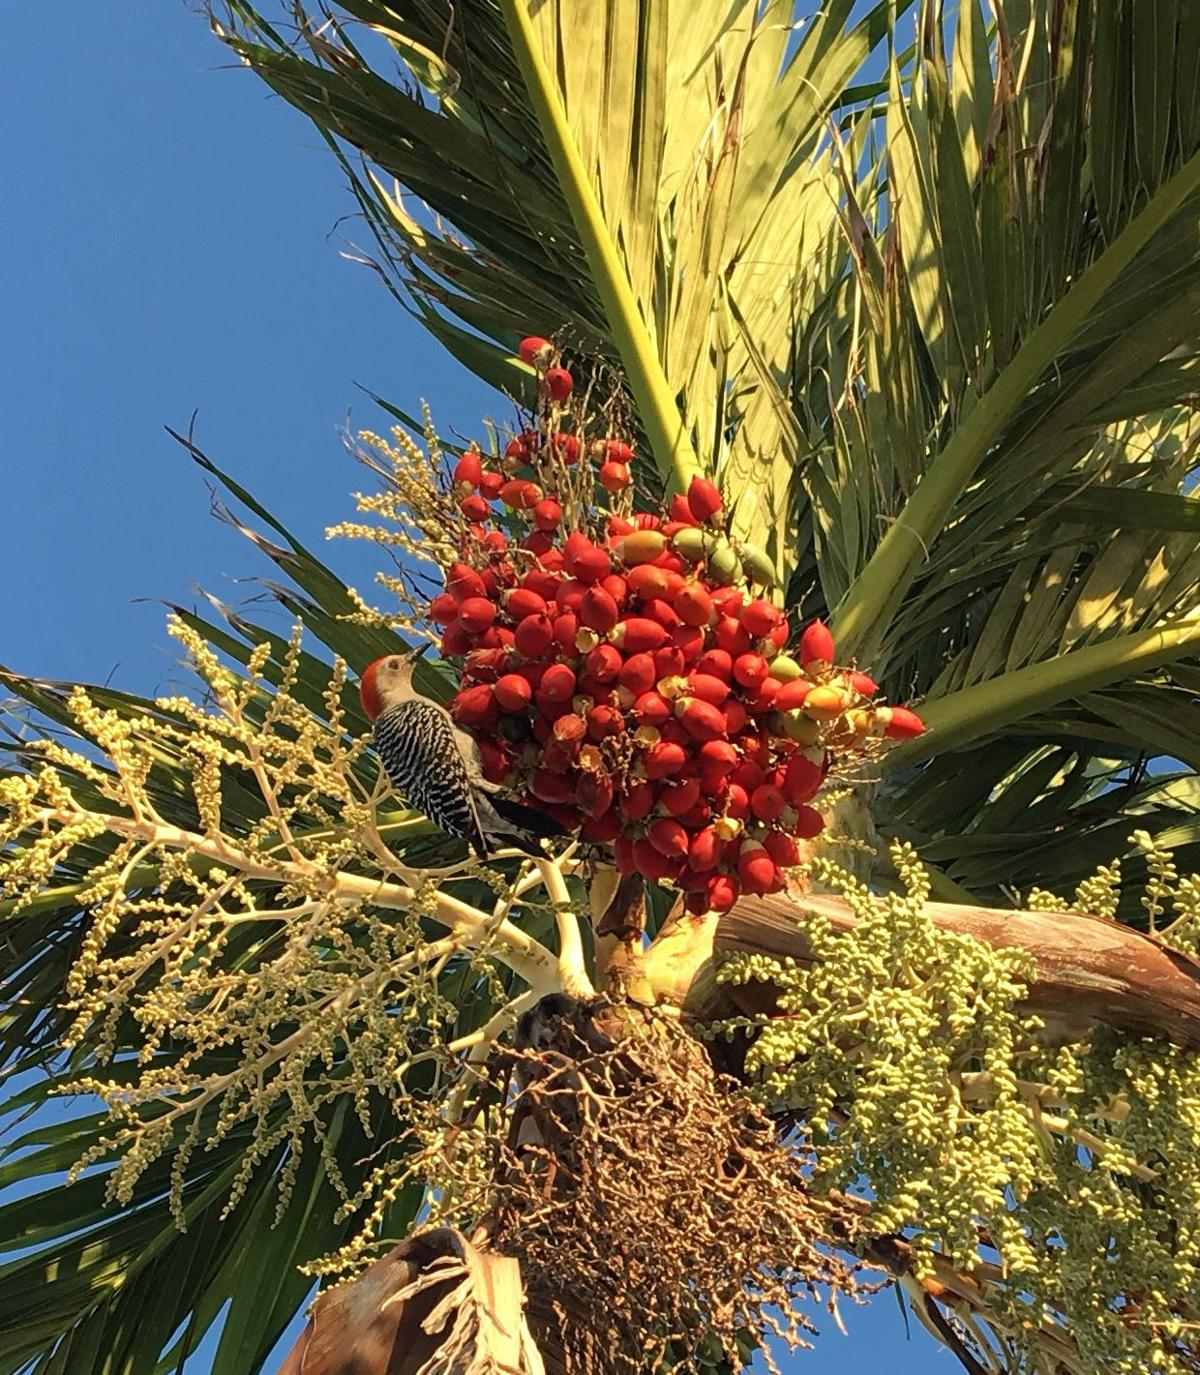 Red bellied woodpecker feeding on Christmas palm berries.